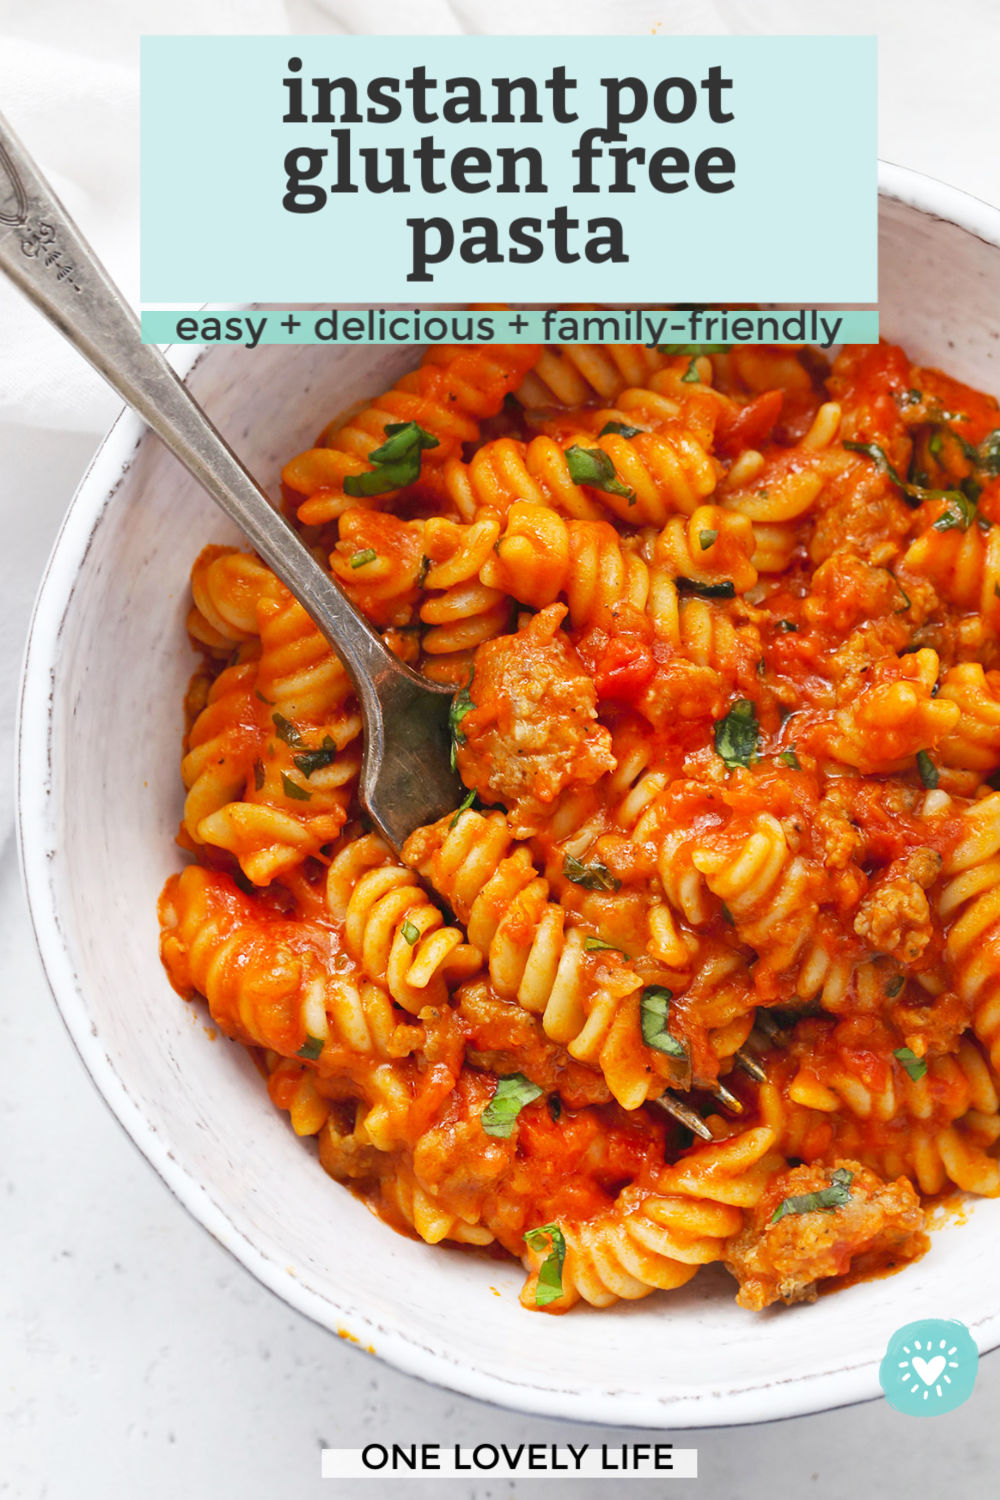 Instant Pot Gluten Free Pasta with Marinara Sauce and Sausage from One Lovely Life